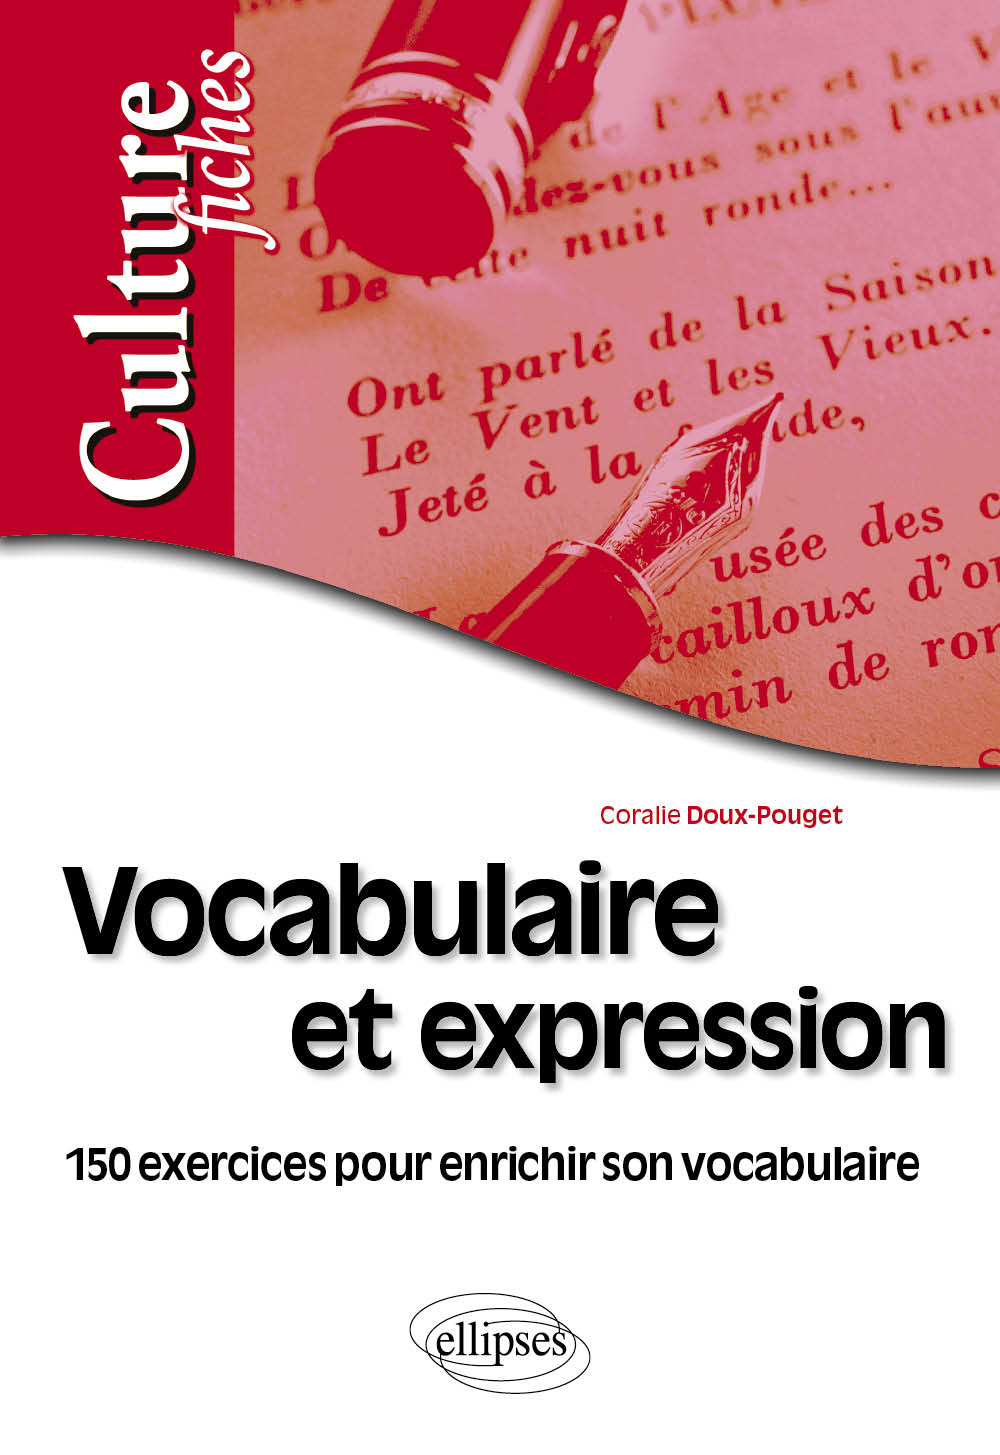 Vocabulaire et expression - 150 exercices pour enrichir son vocabulaire